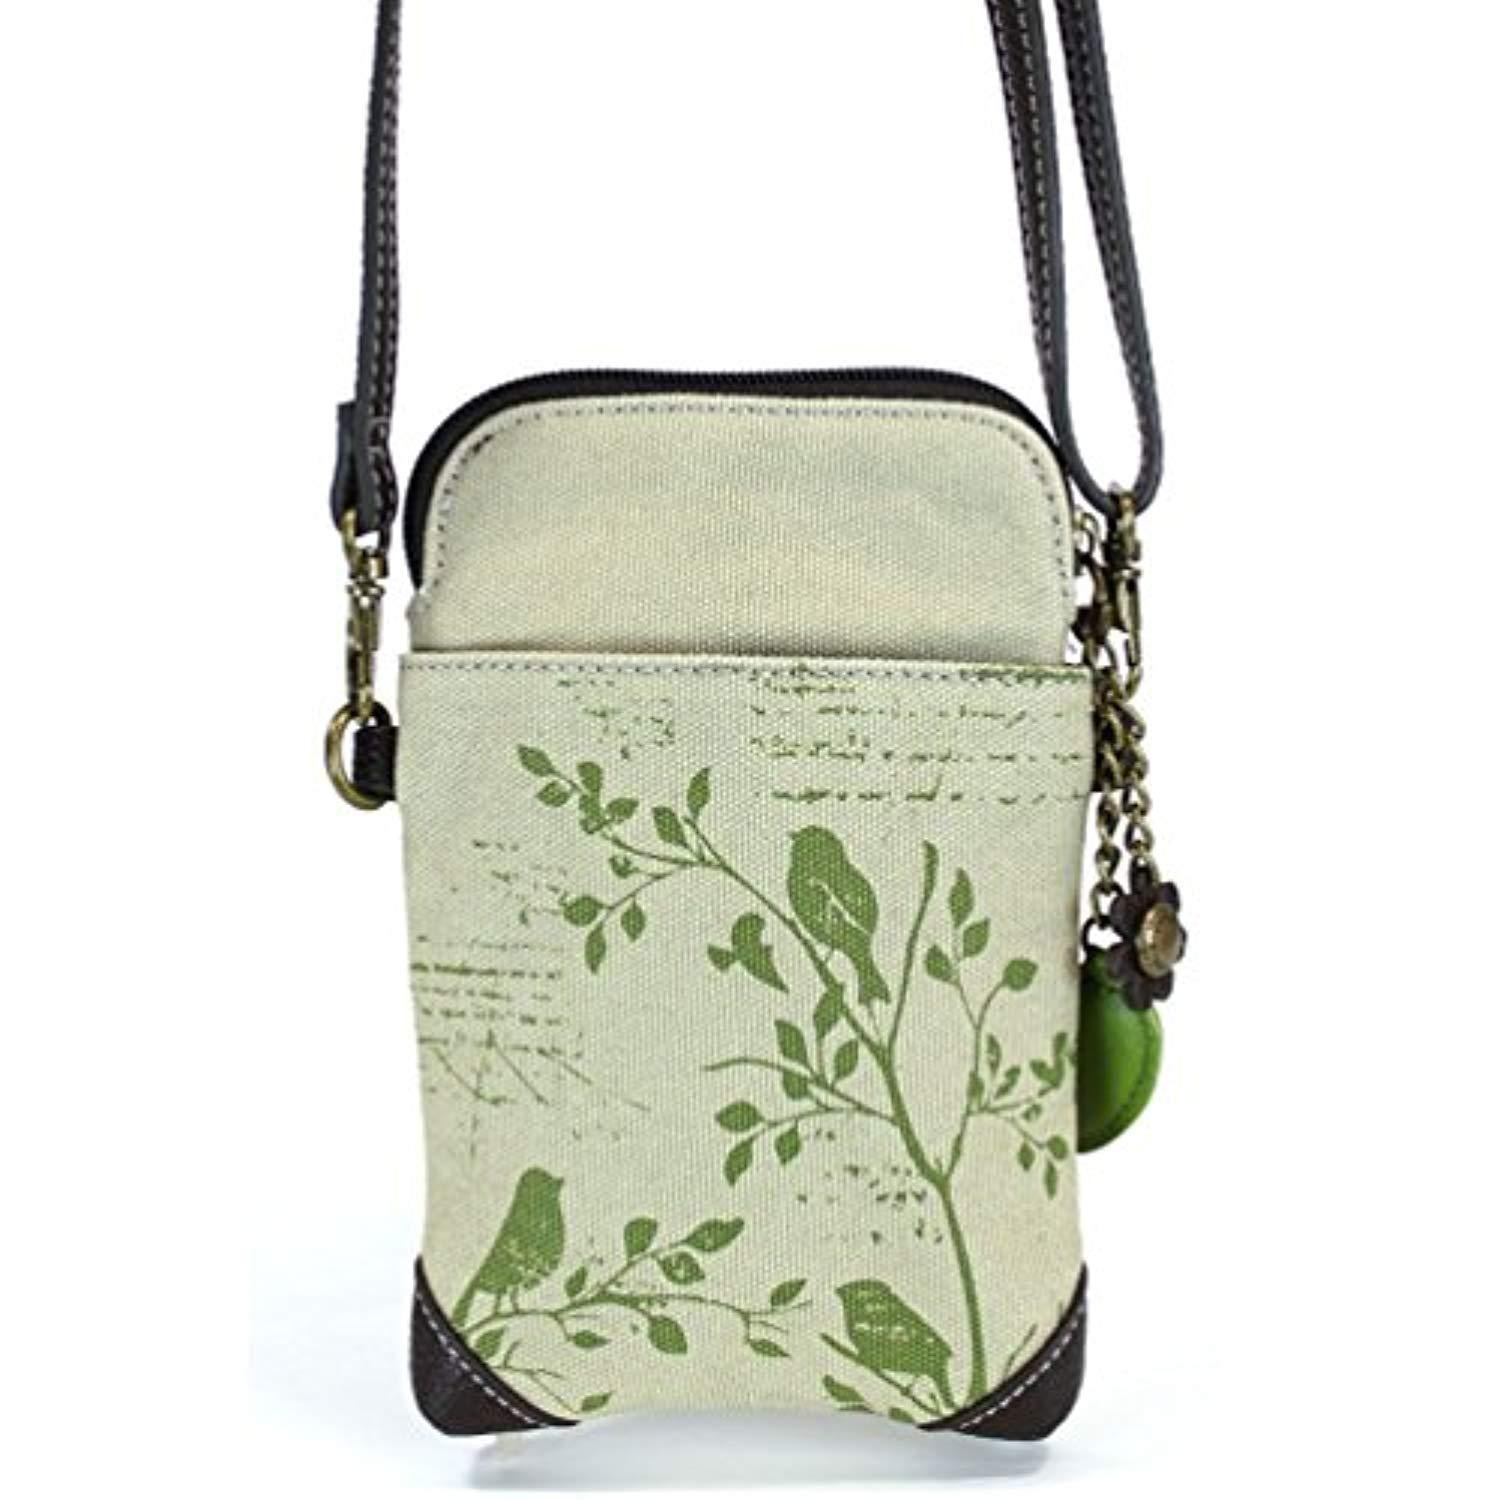 Cross-Body Phone Bag - Bird Safari